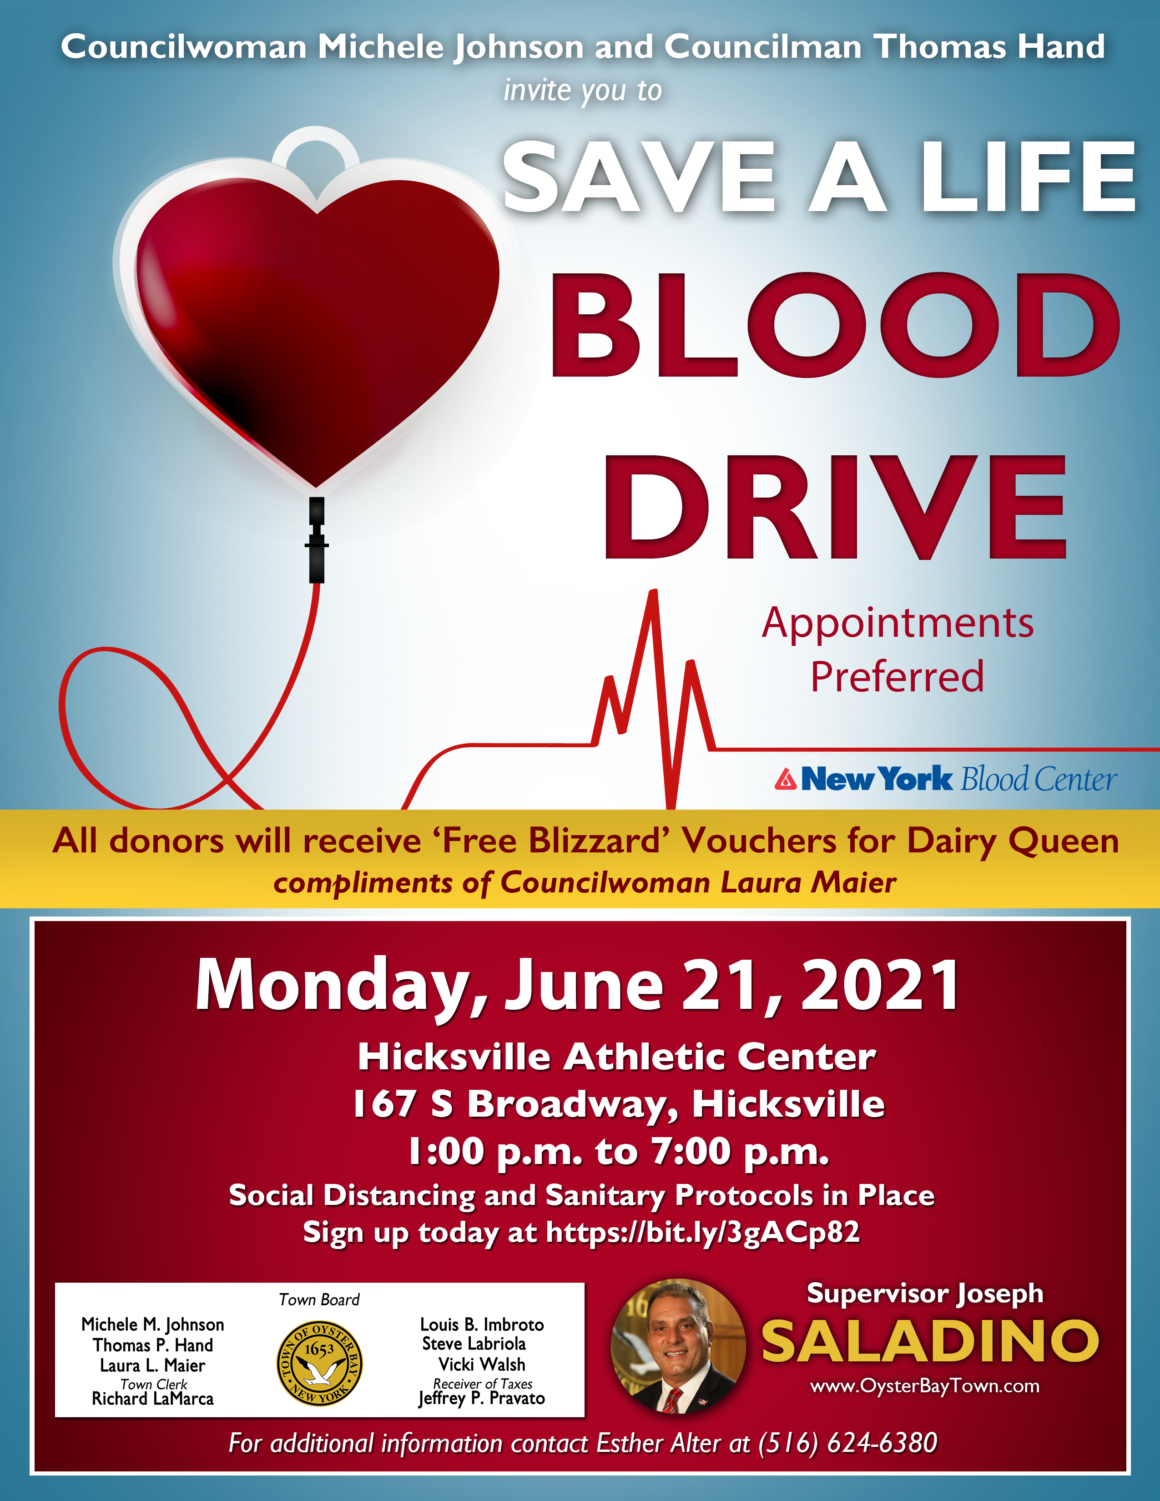 Residents Encouraged to Donate Blood on June 21st in Hicksville